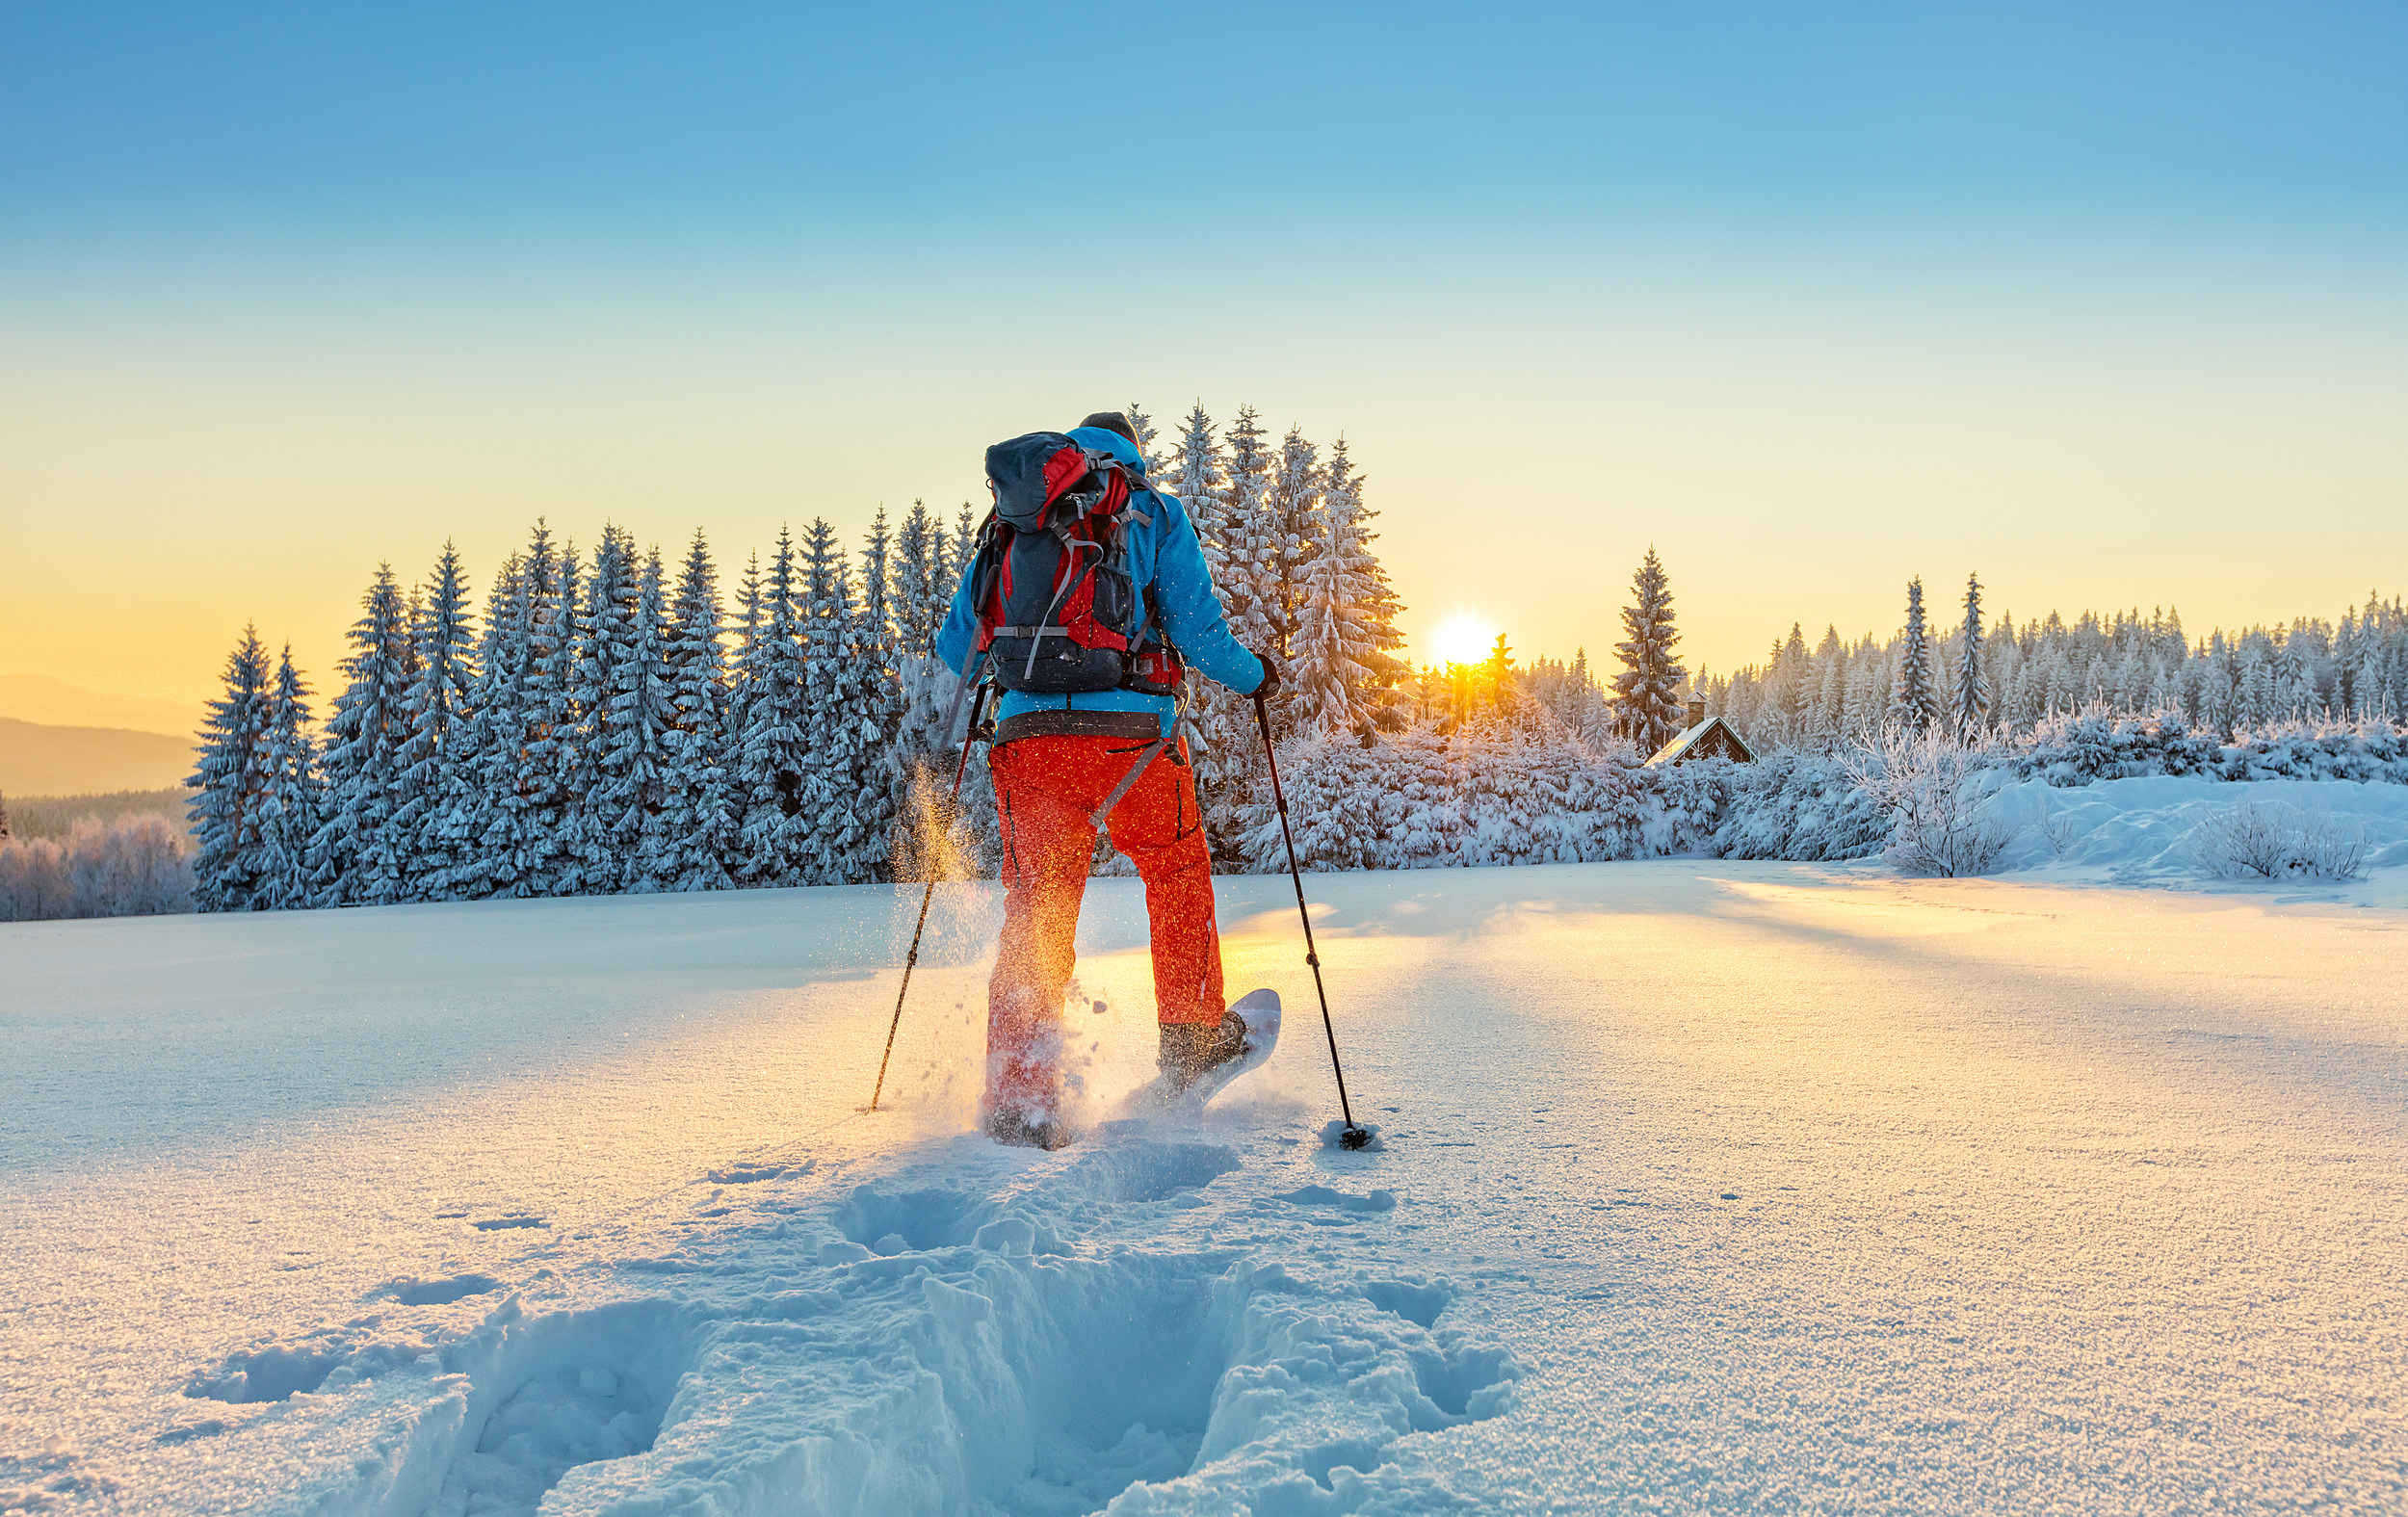 Rent Snowshoes And Skis From The City of Oneida Parks And Rec